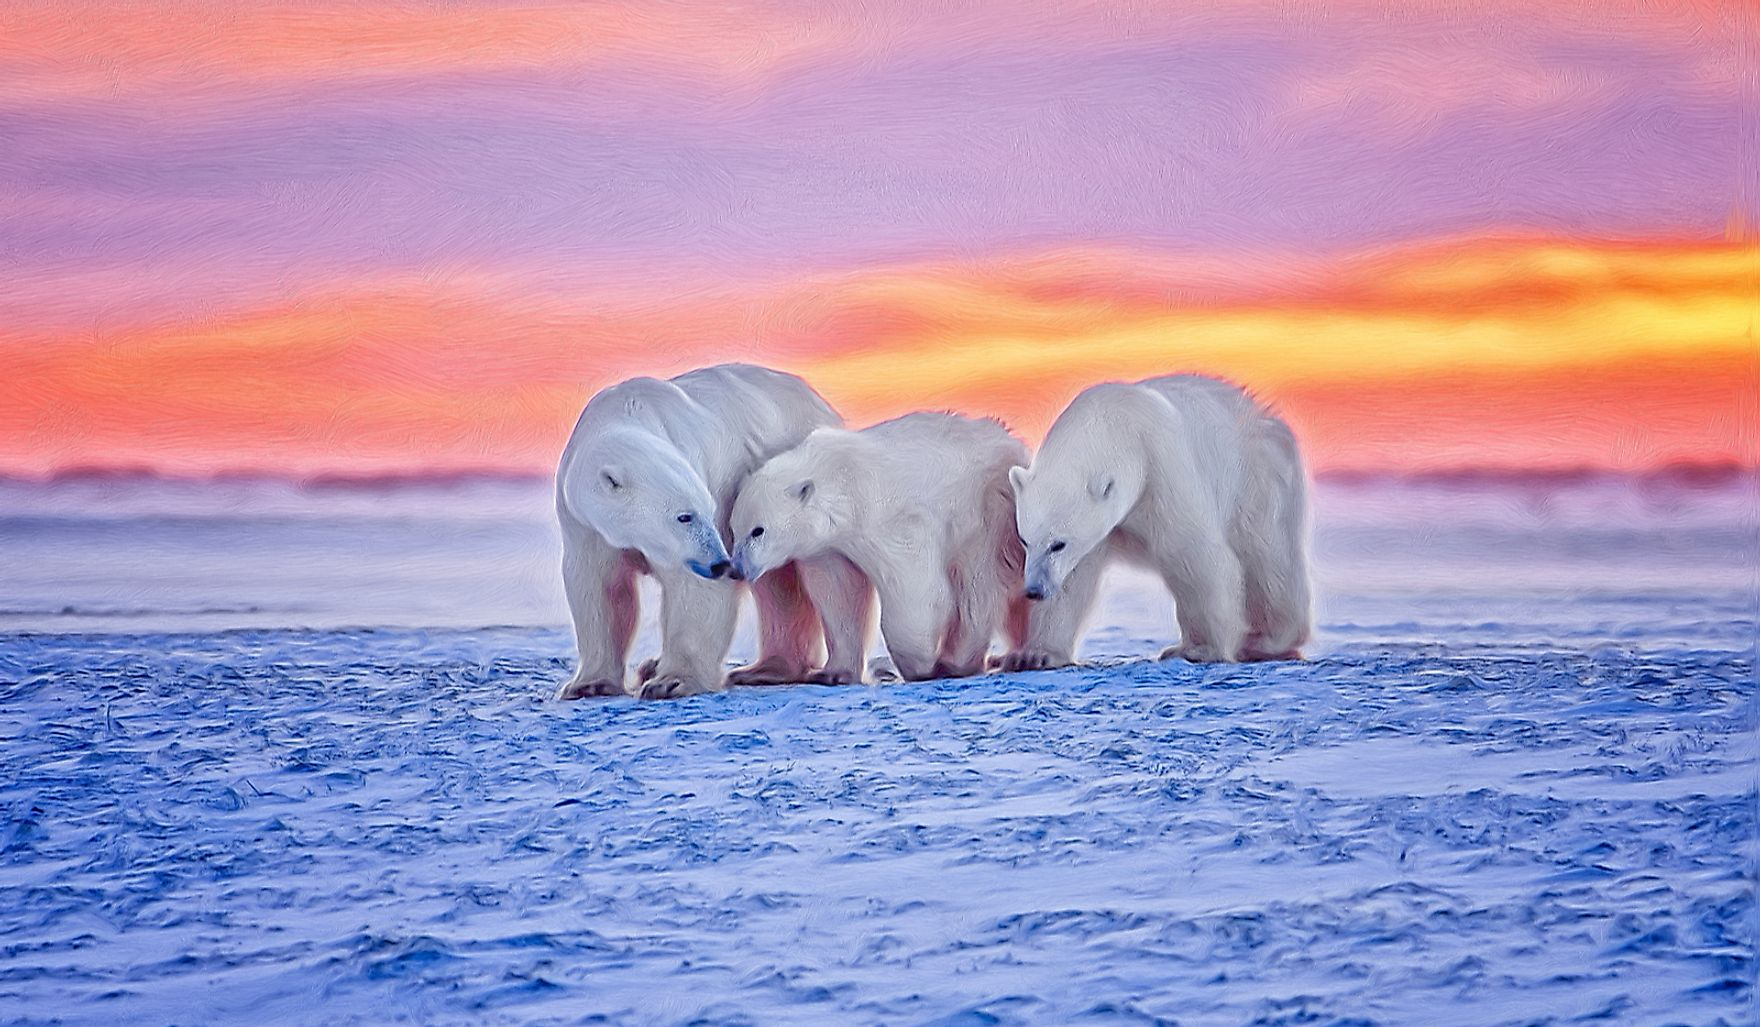 Polar bear family in the Arctic sunset.